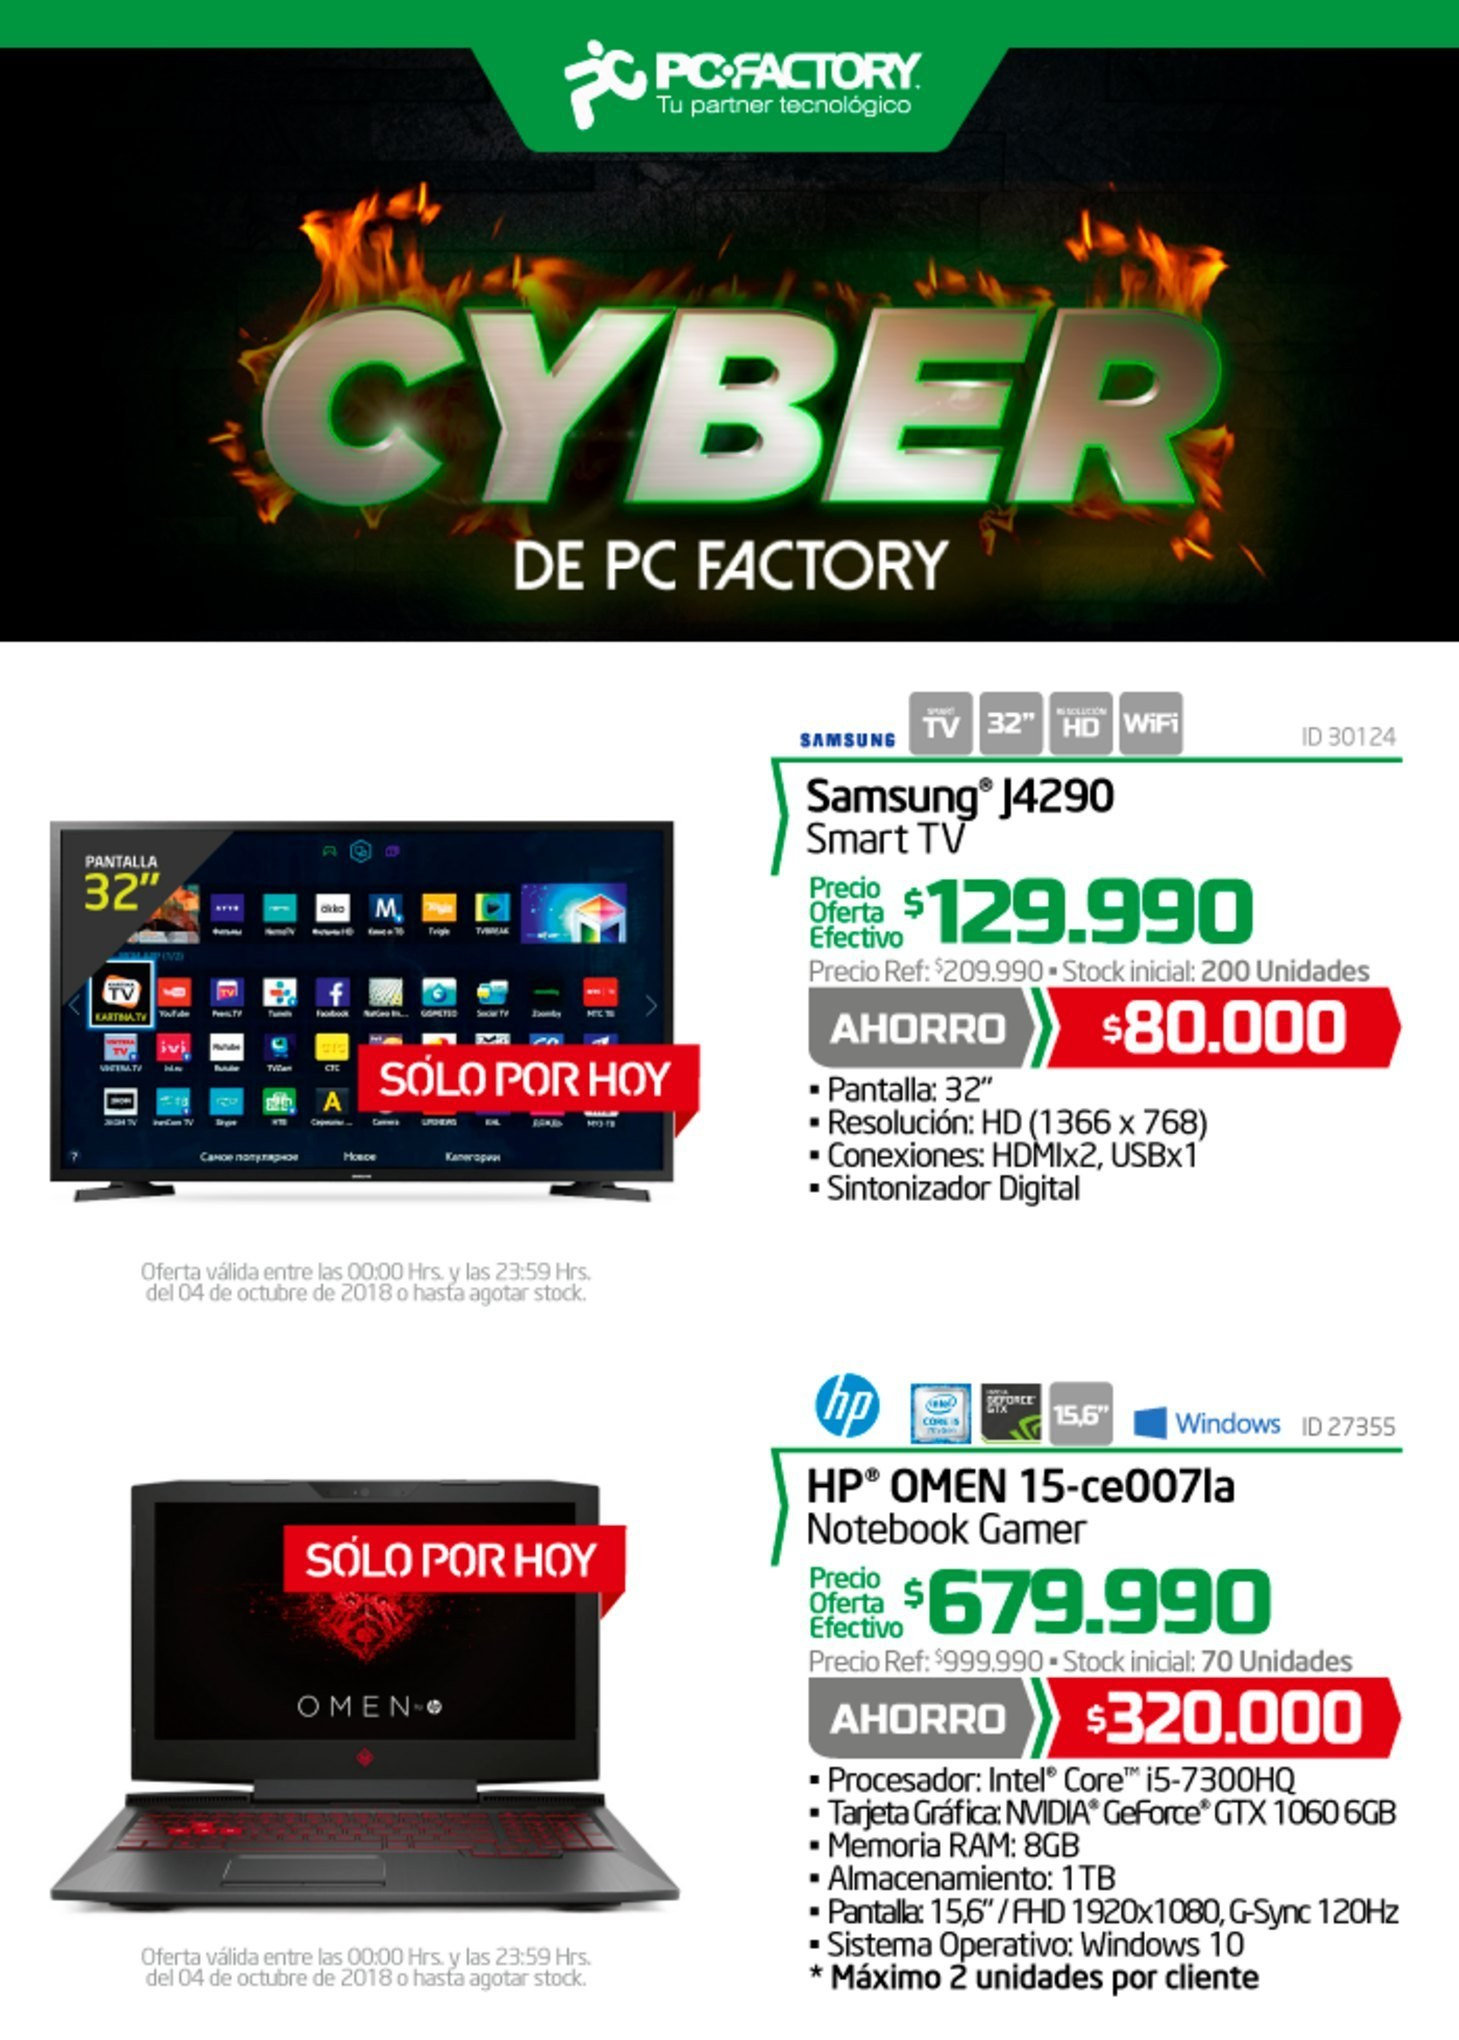 Catálogo PC Factory - 4.10.2018 - 4.10.2018 - Ventas - geforce, intel, procesador, smart tv, tv, samsung, nvidia. Página 1.